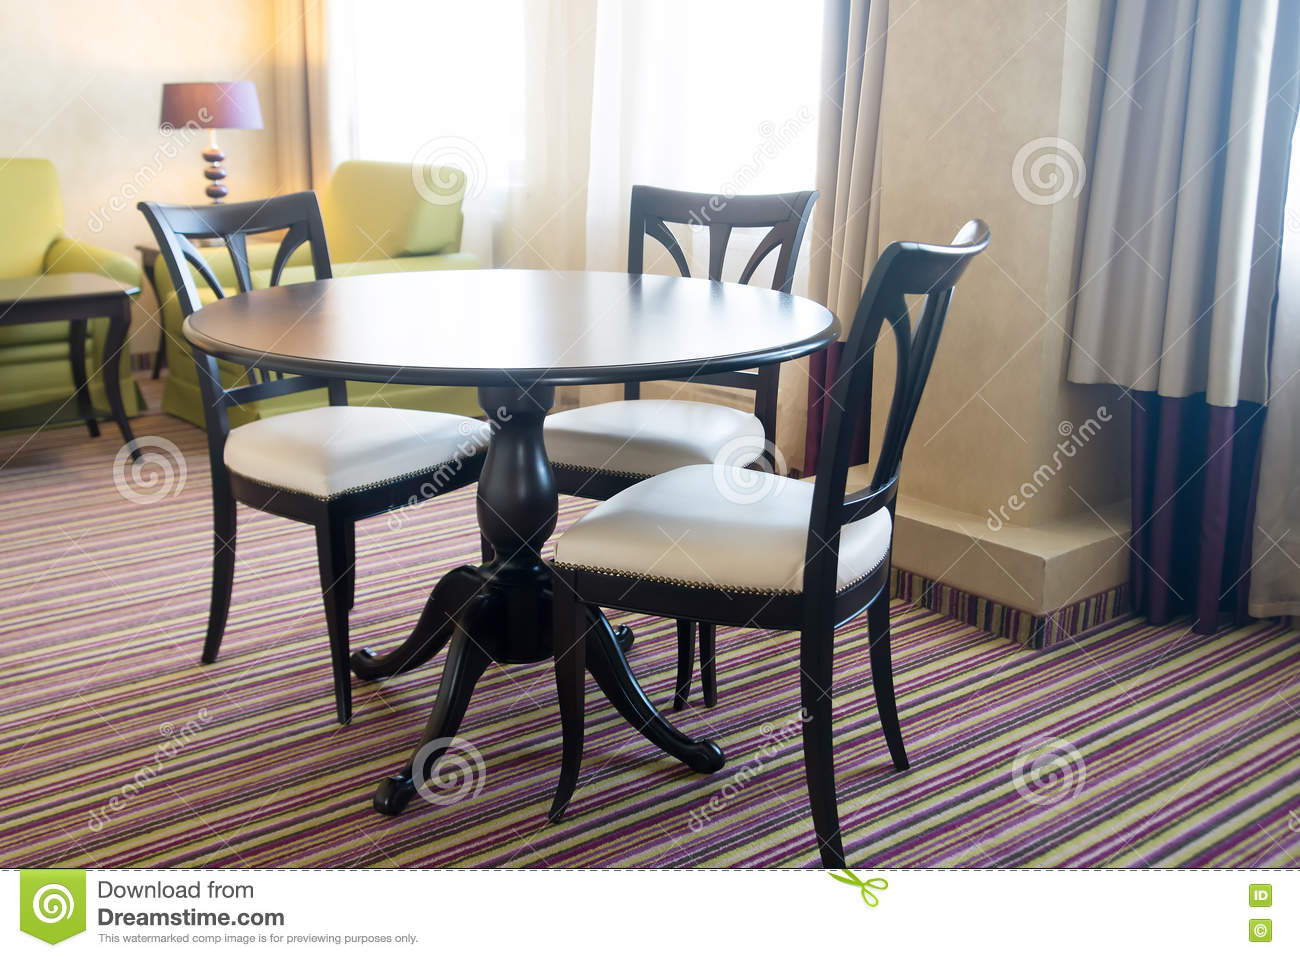 Chairs and table furniture dining room